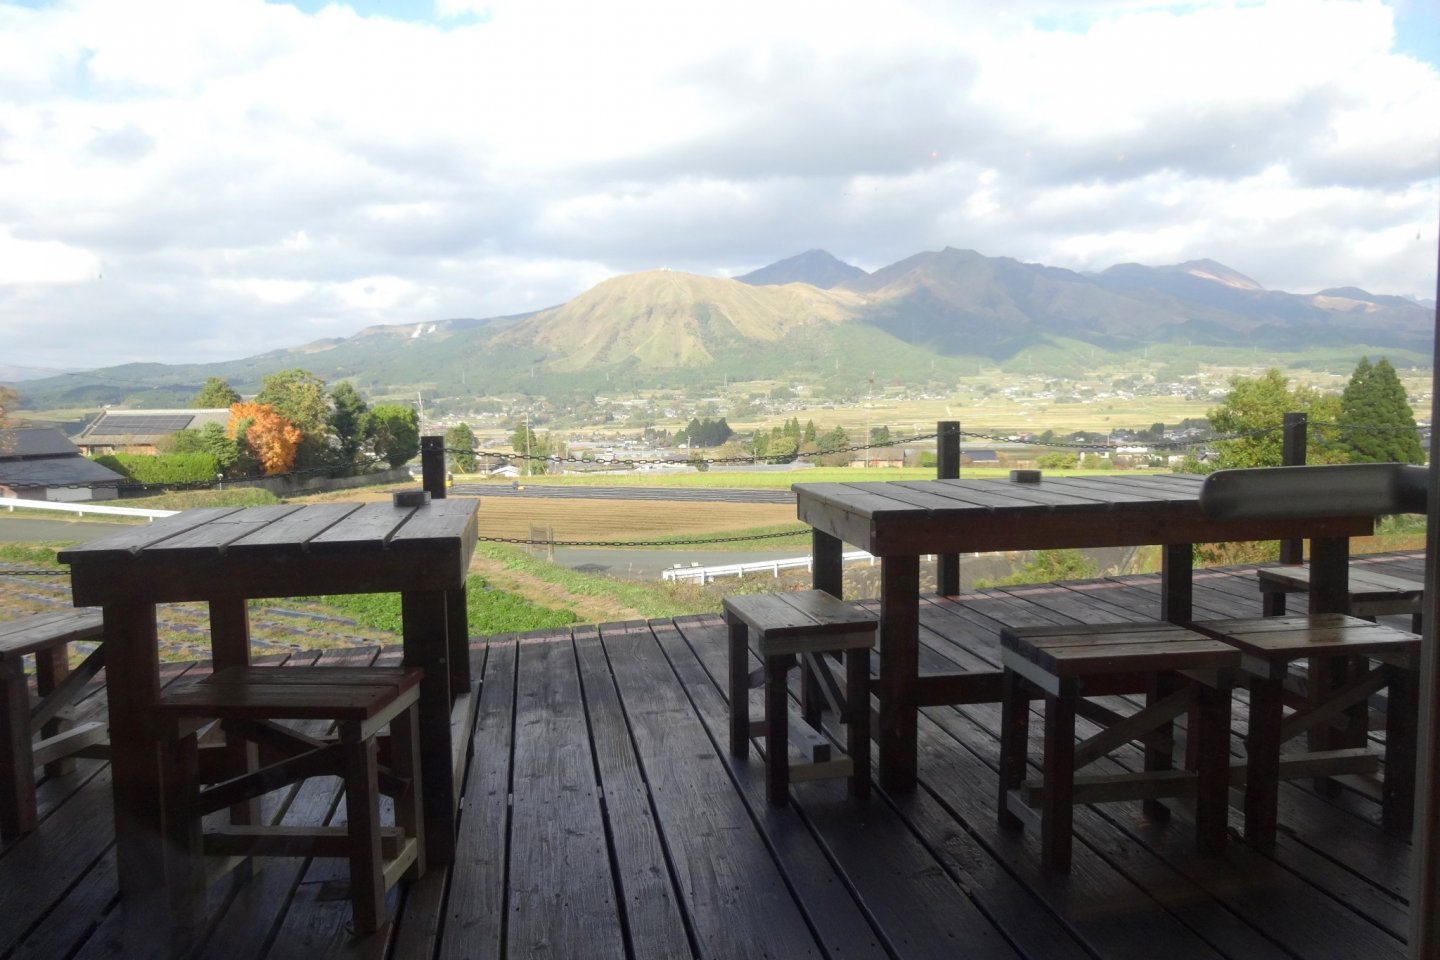 The view from the cafe of Kumamoto's Mt Aso